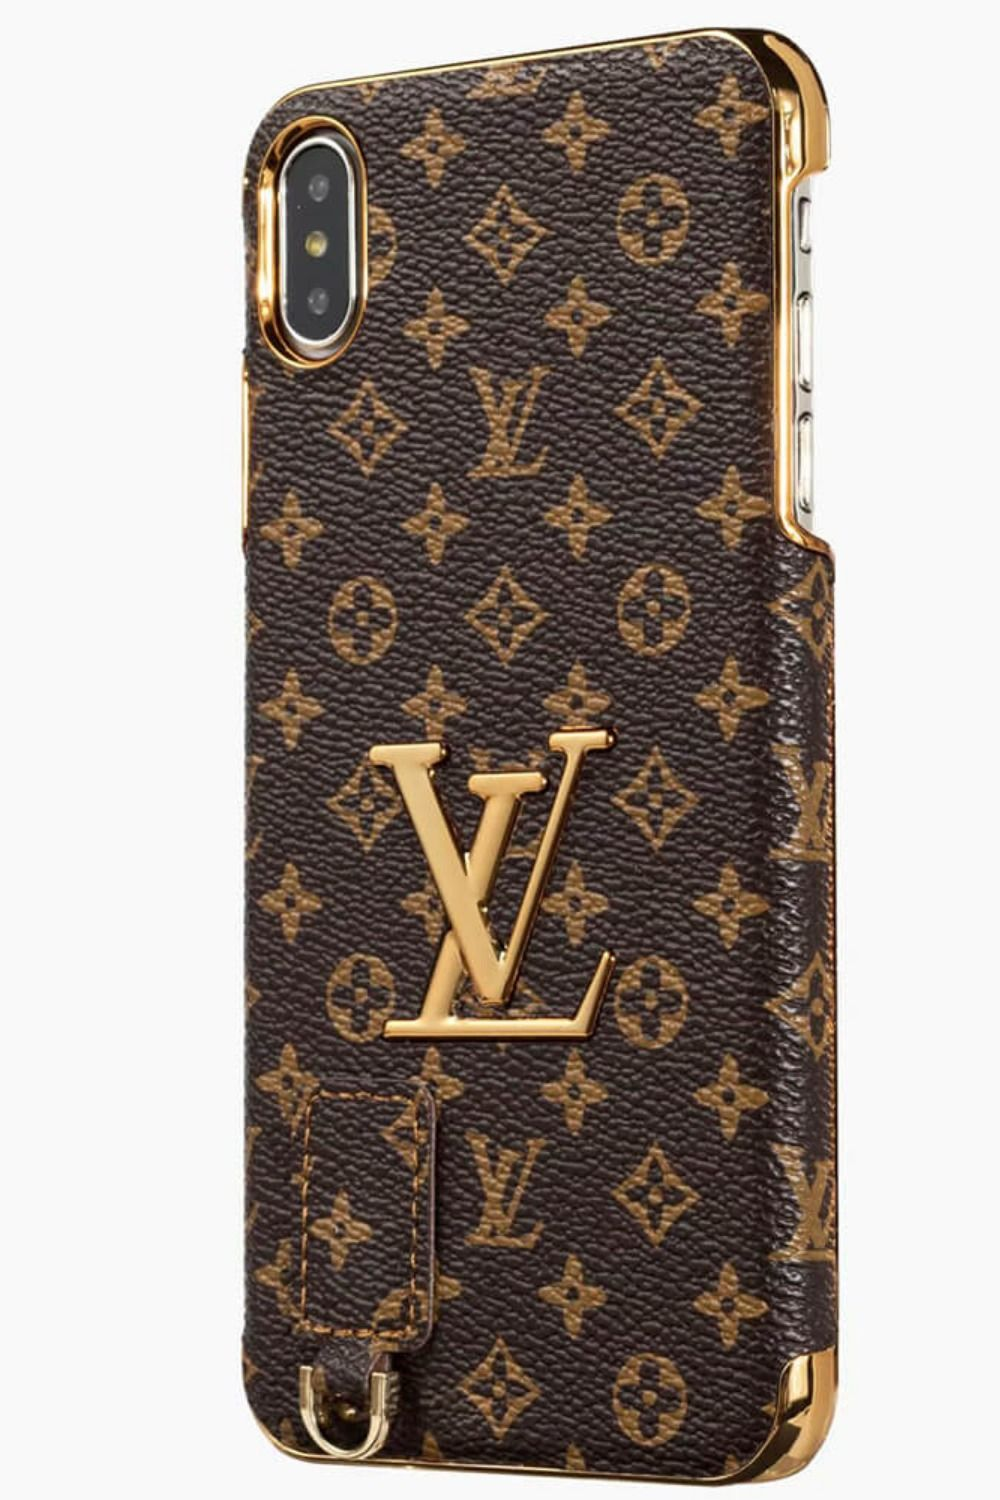 Photo of LV iPhone-etui Brun 11 Pro Xs Max Xr 8 Plus 3D Plating Leather 10162